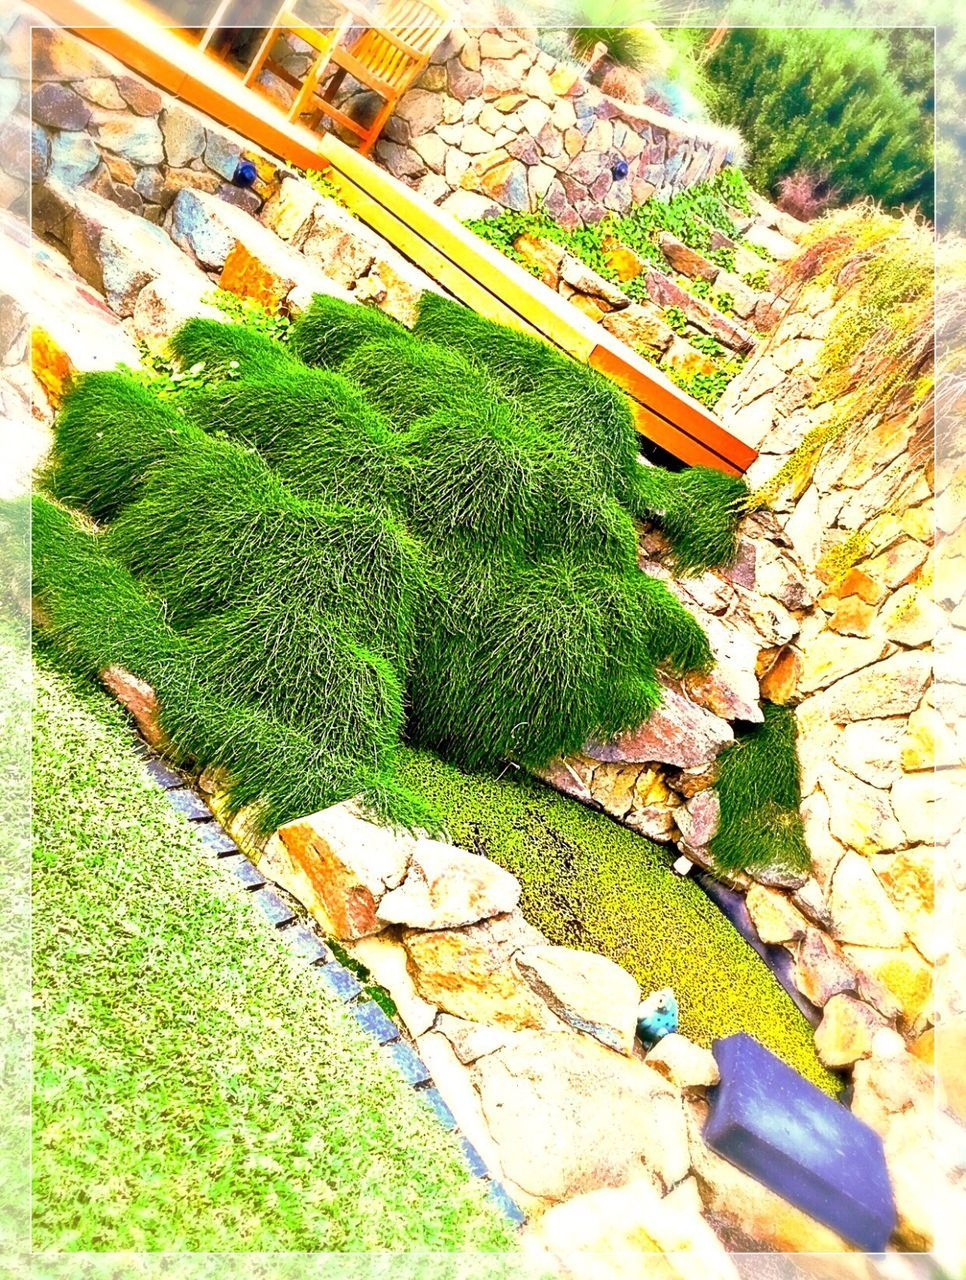 green color, high angle view, no people, day, outdoors, grass, leaf, nature, close-up